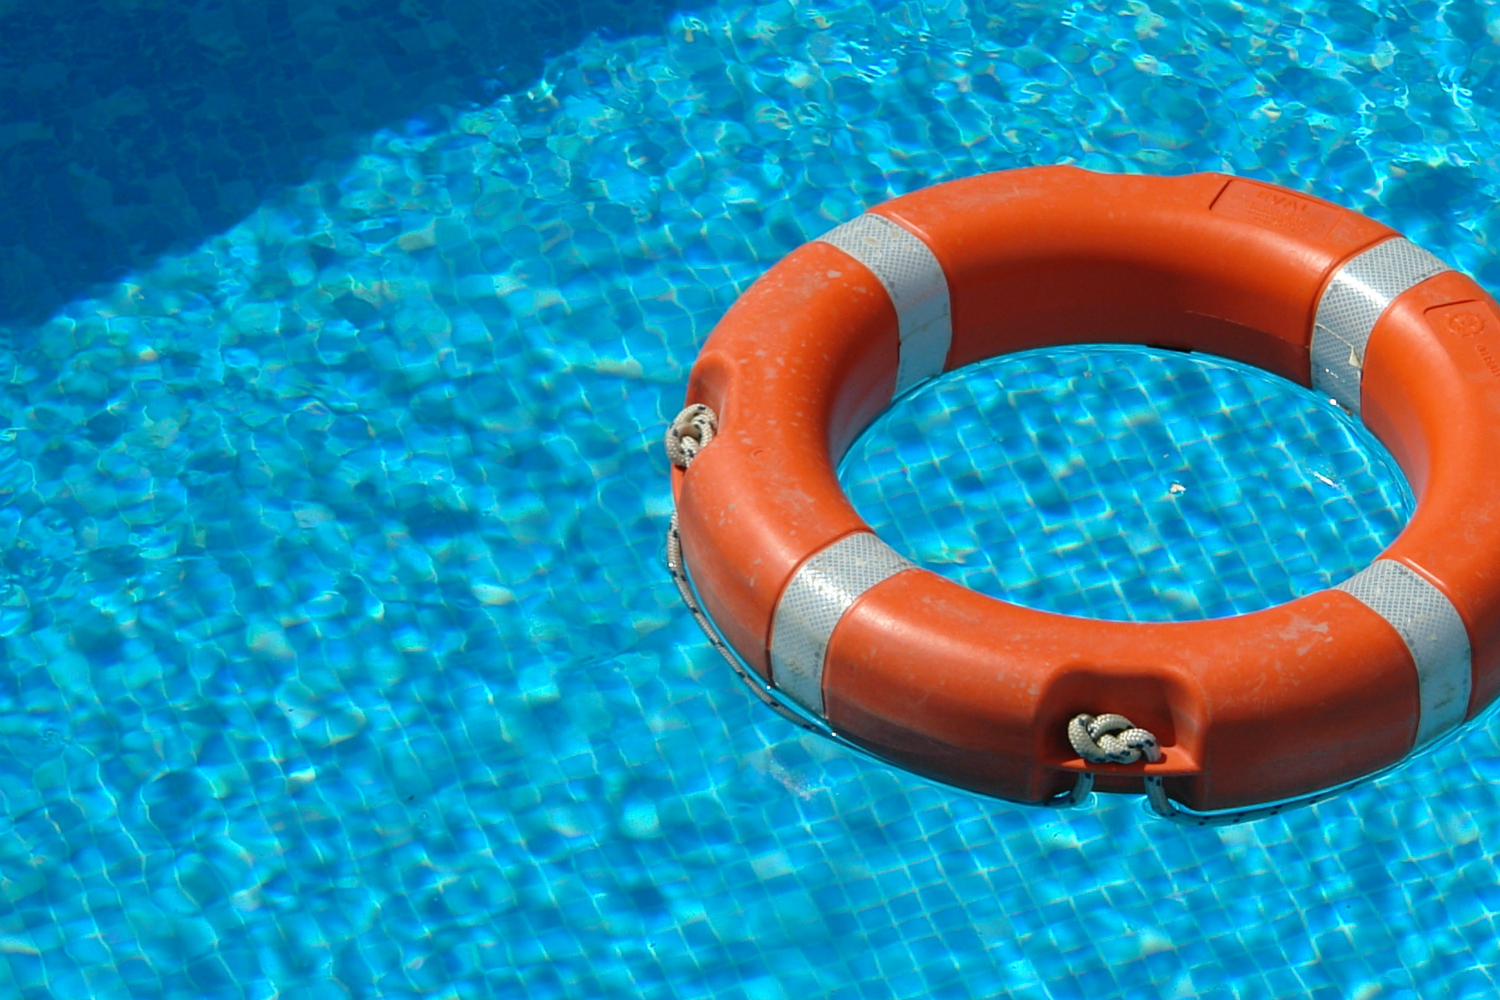 Life saver floats in pool